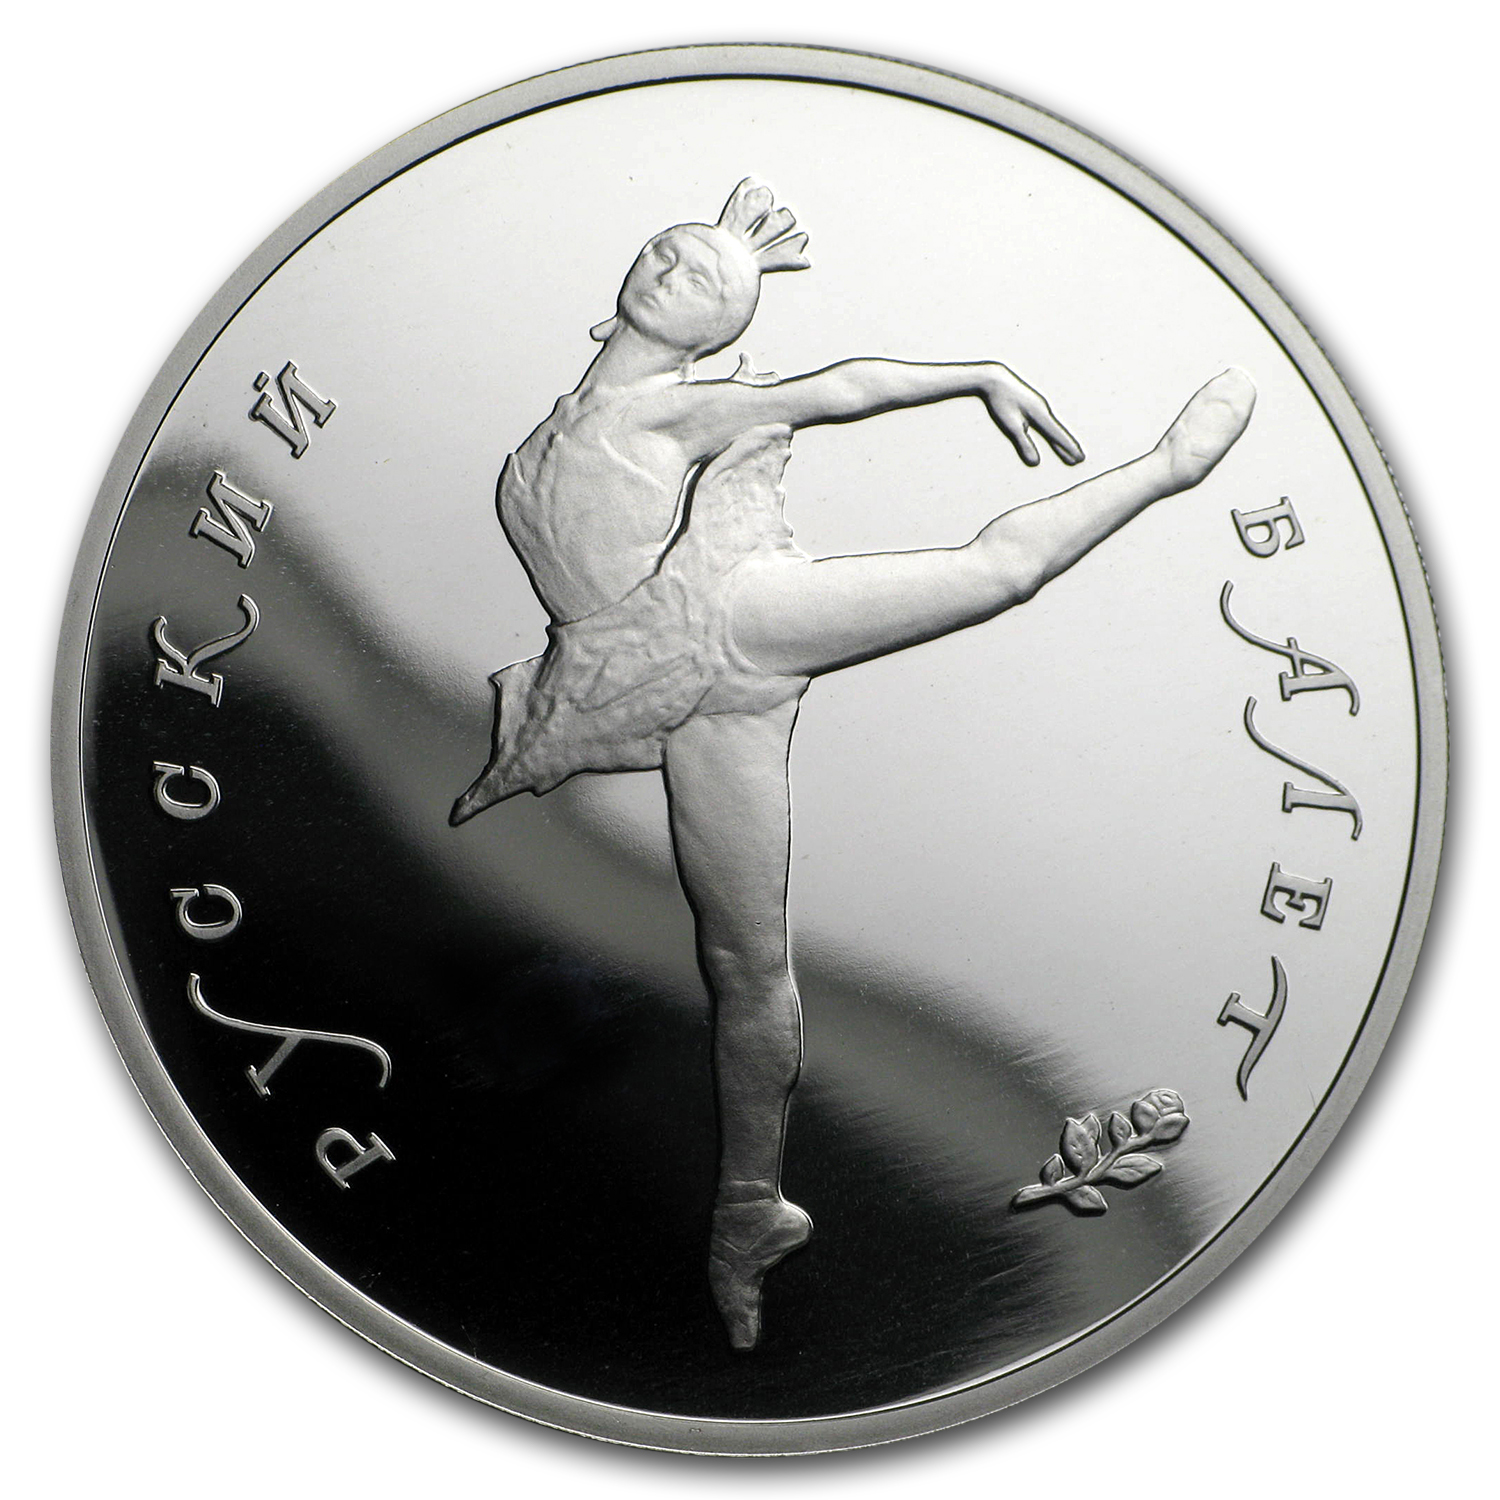 1990 Russia 1 oz Palladium Ballerina Proof